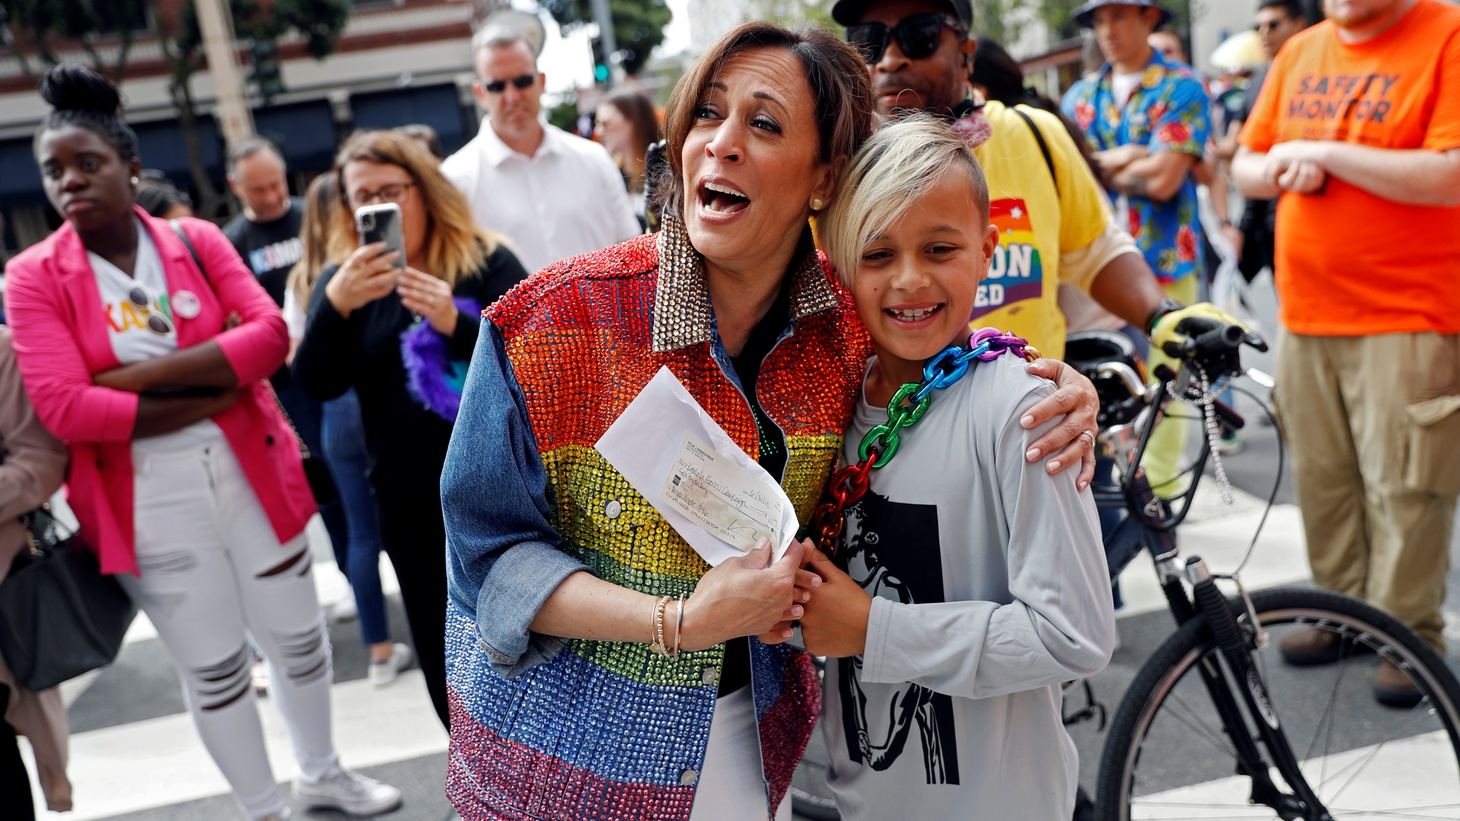 Democratic presidential candidate Kamala Harris reacts as Ryan Kyote donates to her campaign during the Pride Parade in San Francisco, California, U.S., June 30, 2019.